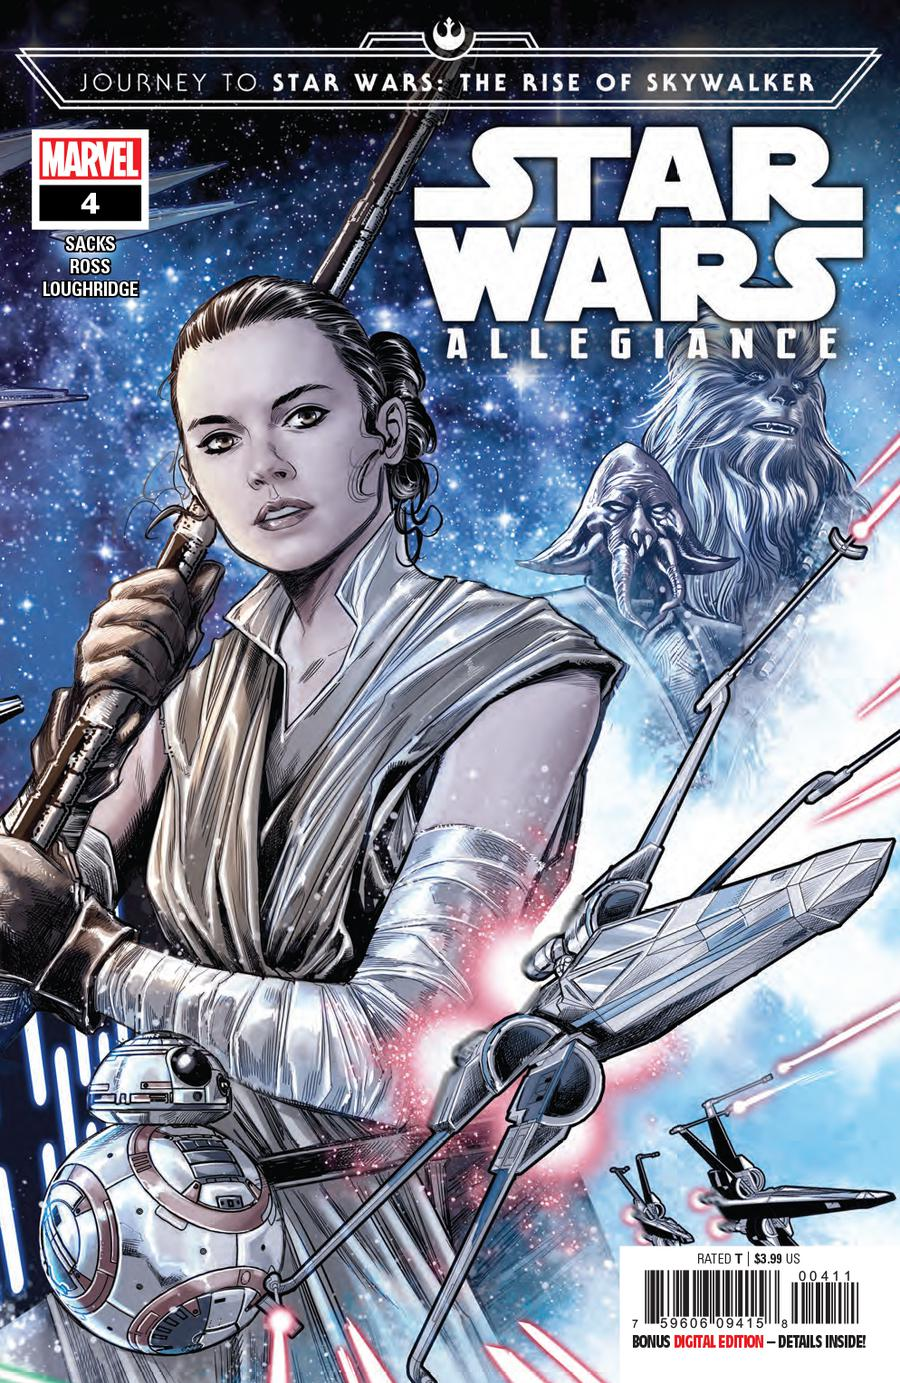 Journey To Star Wars The Rise Of Skywalker Allegiance #4 Cover A Regular Marco Checchetto Connecting Cover